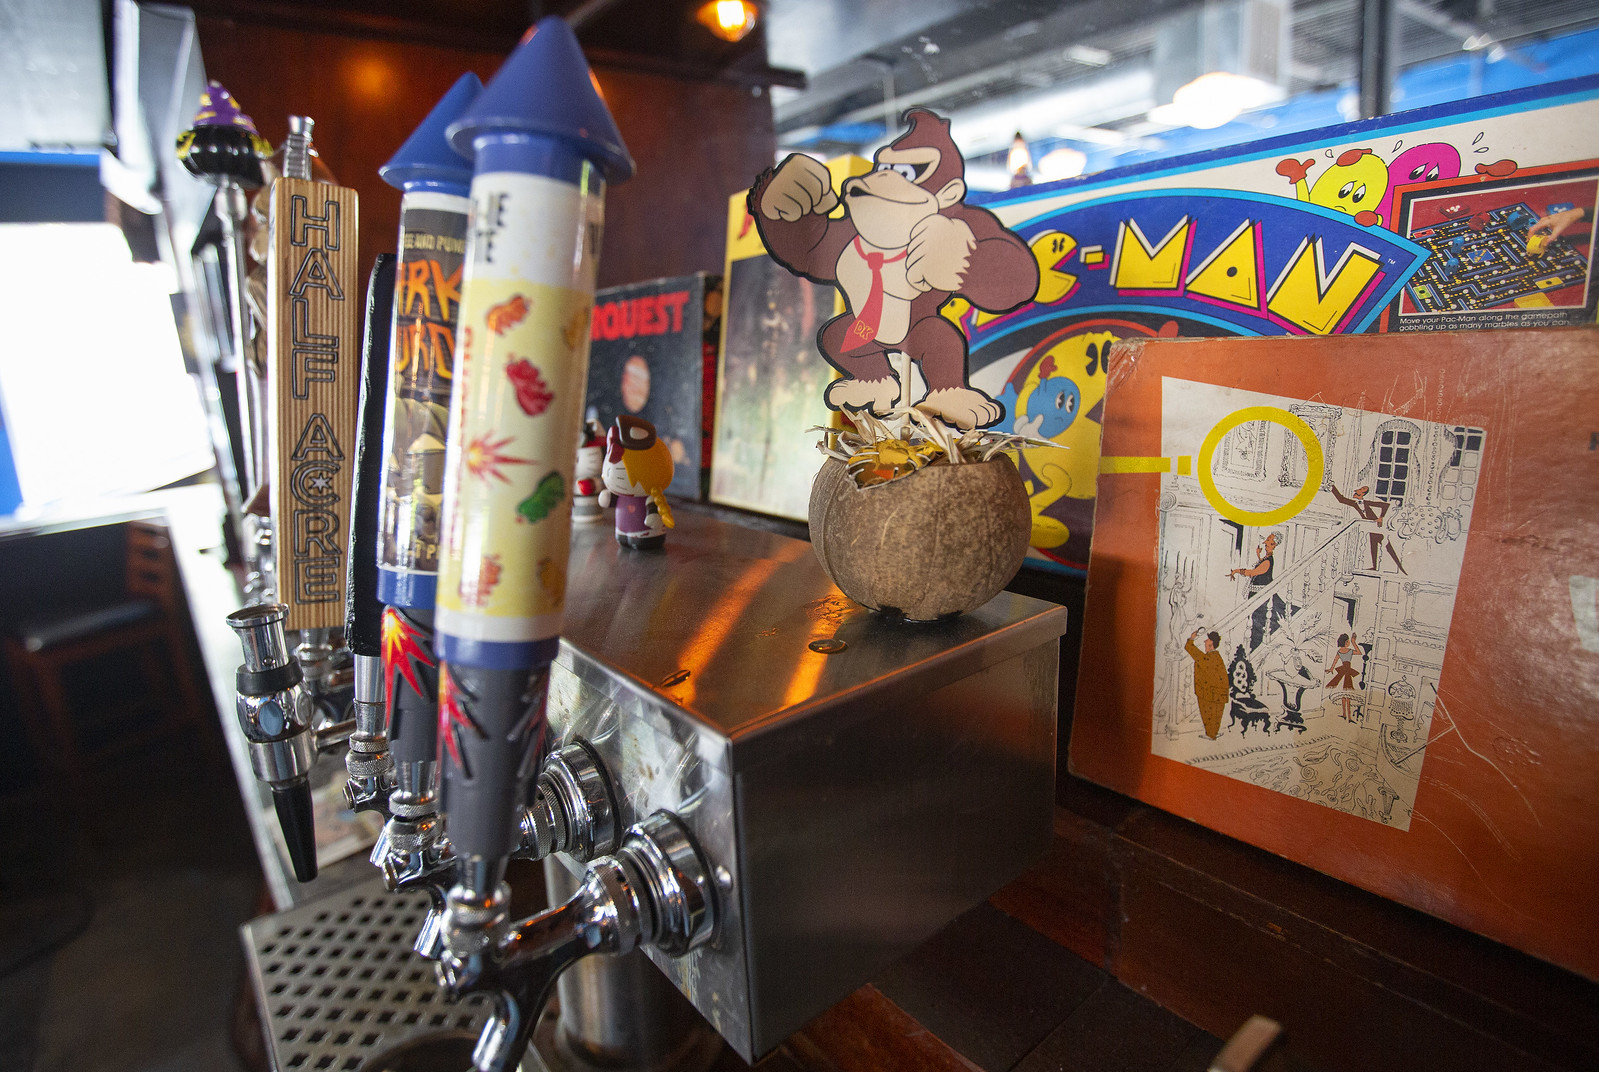 beer taps and a model of Donkey Kong